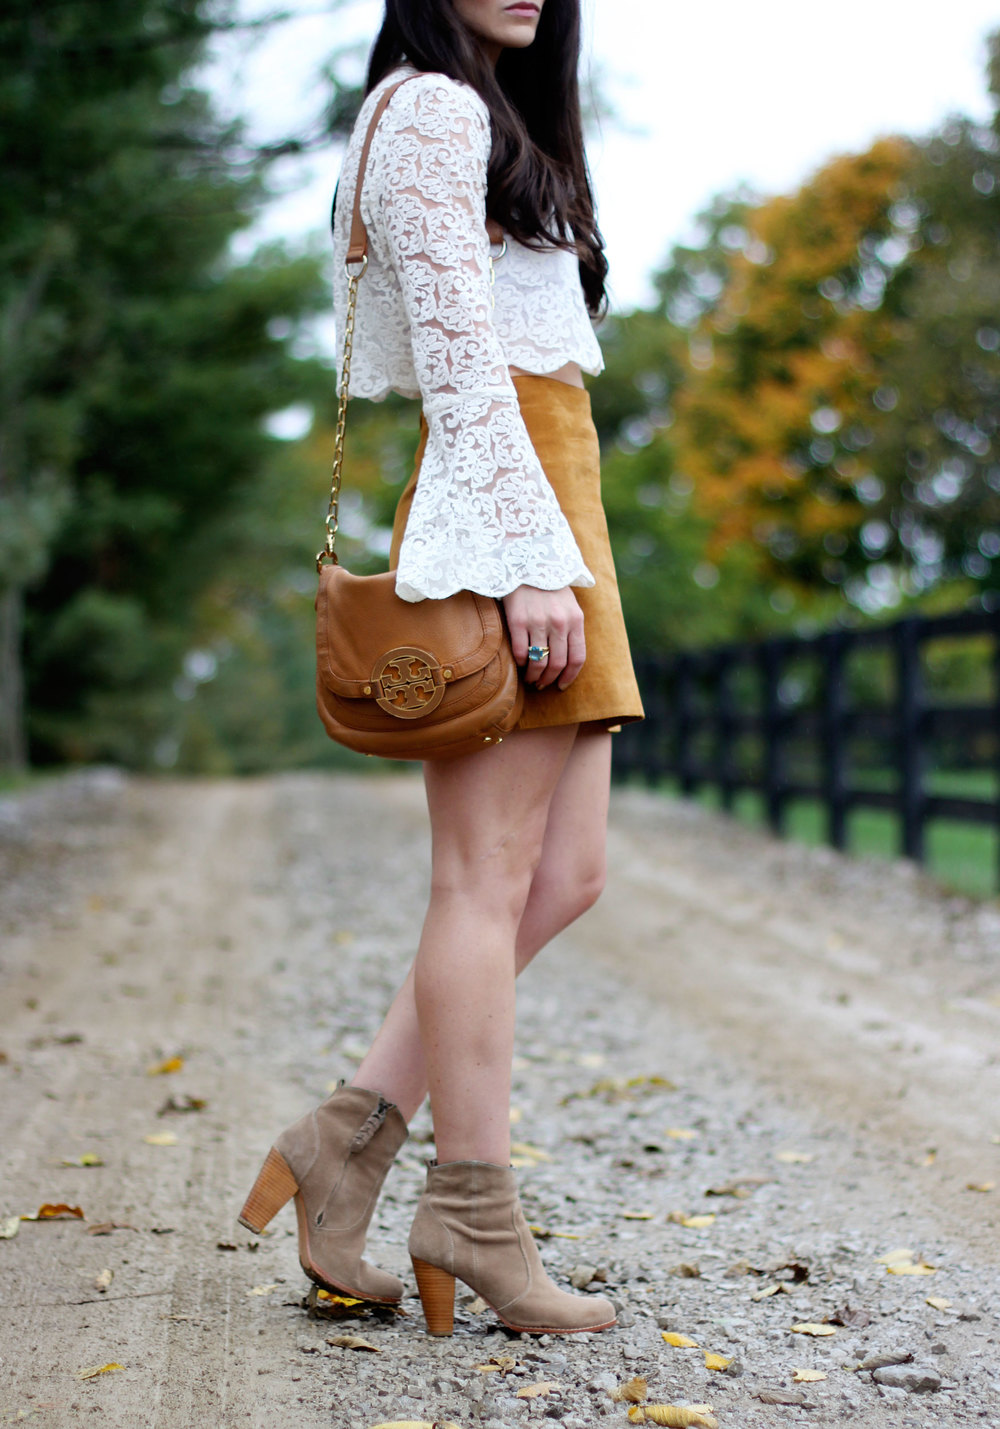 Almost identical Joie booties and a fabulous Tory Burch crossbody handbag are included in the sale!